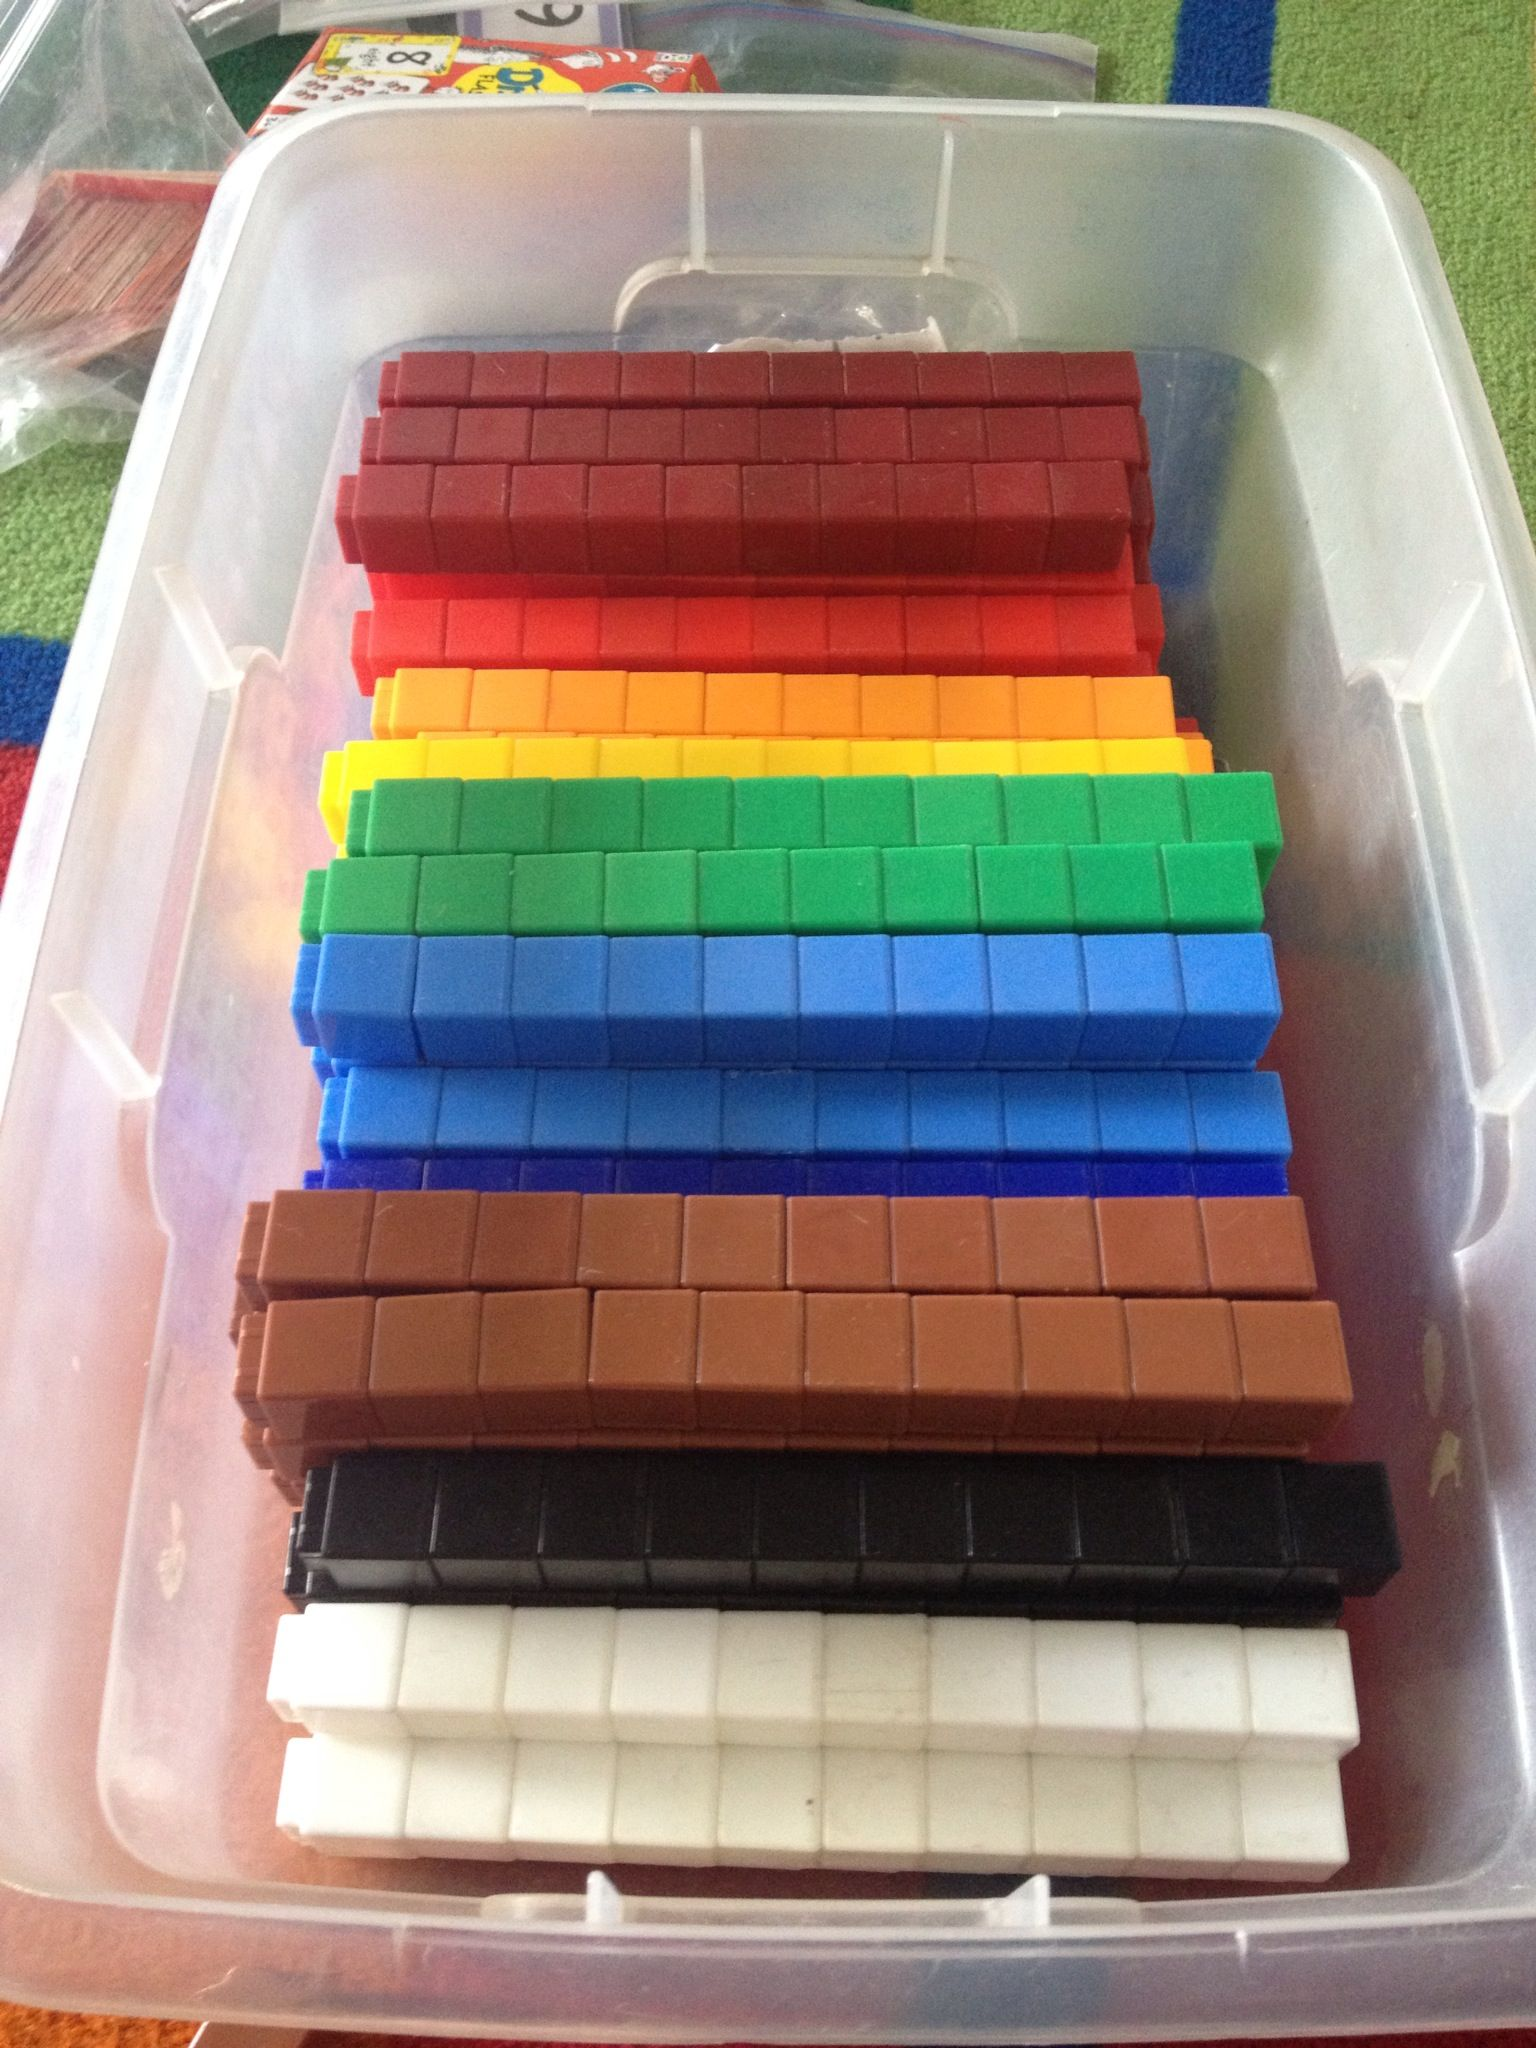 Store Unifix Cubes In Tens Have Kids Put Them Away Again